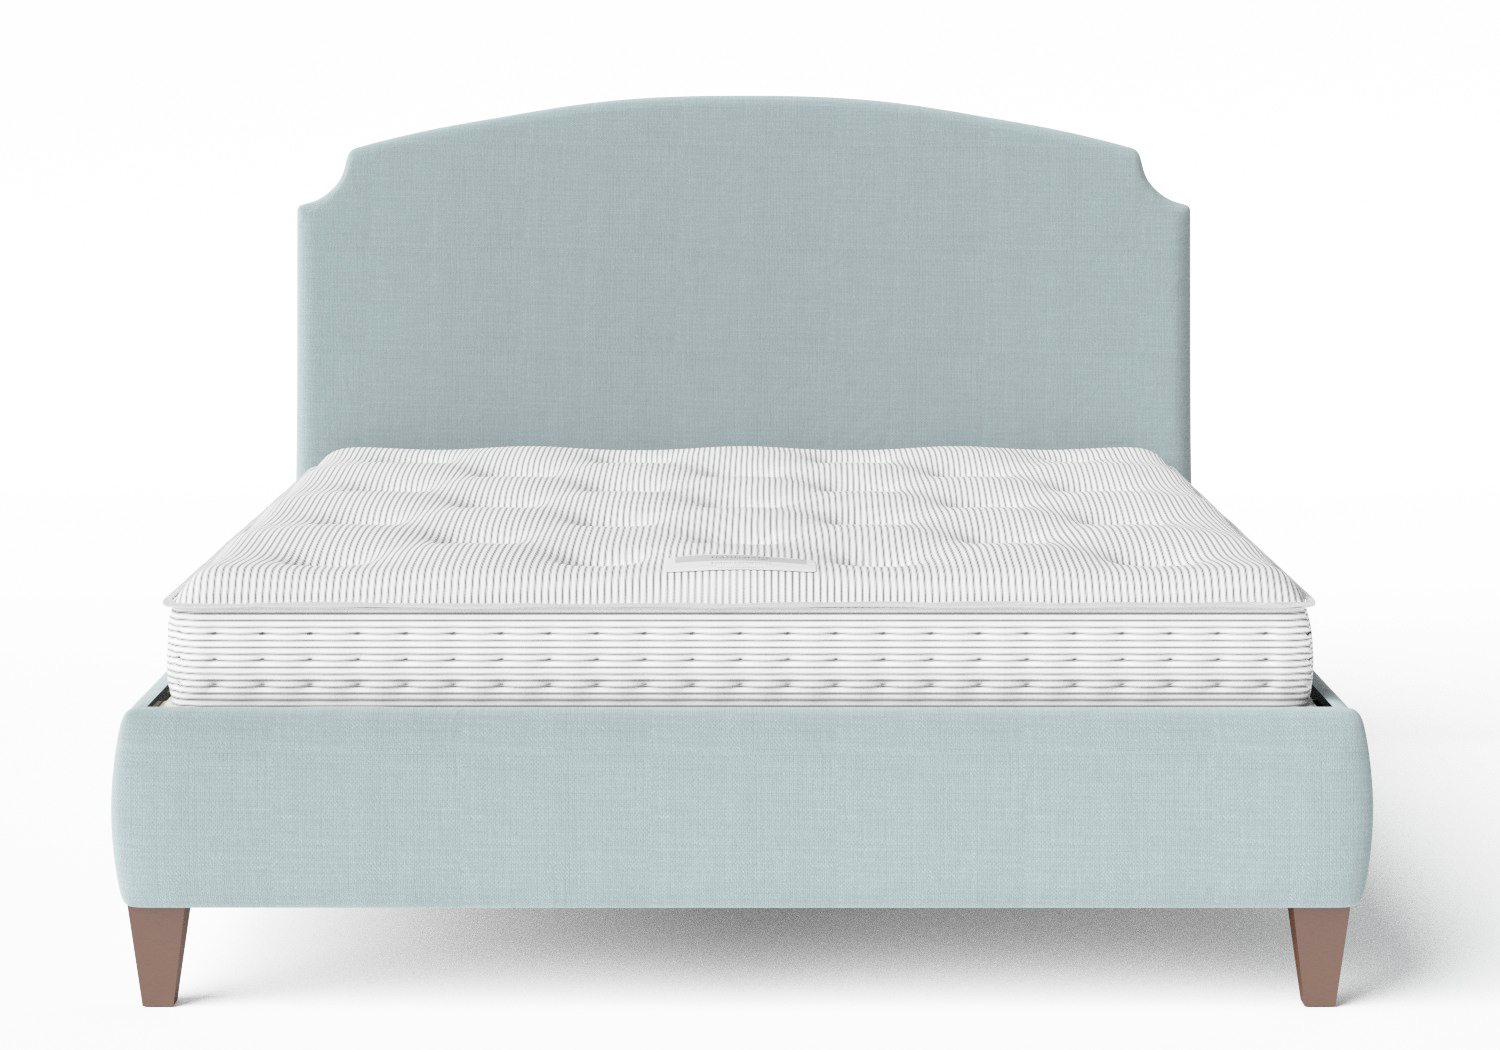 Lide Upholstered Bed in Wedgewood fabric shown with Juno 1 mattress